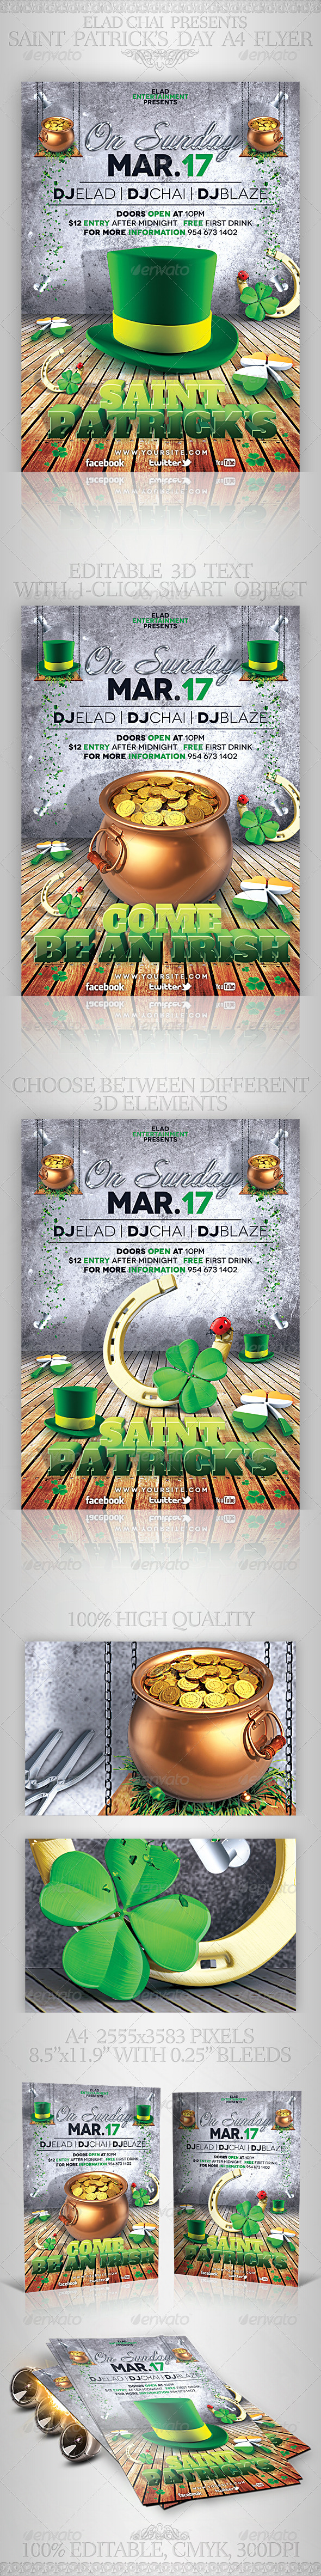 St. Patrick's Day A4 Flyer Poster Template - Events Flyers